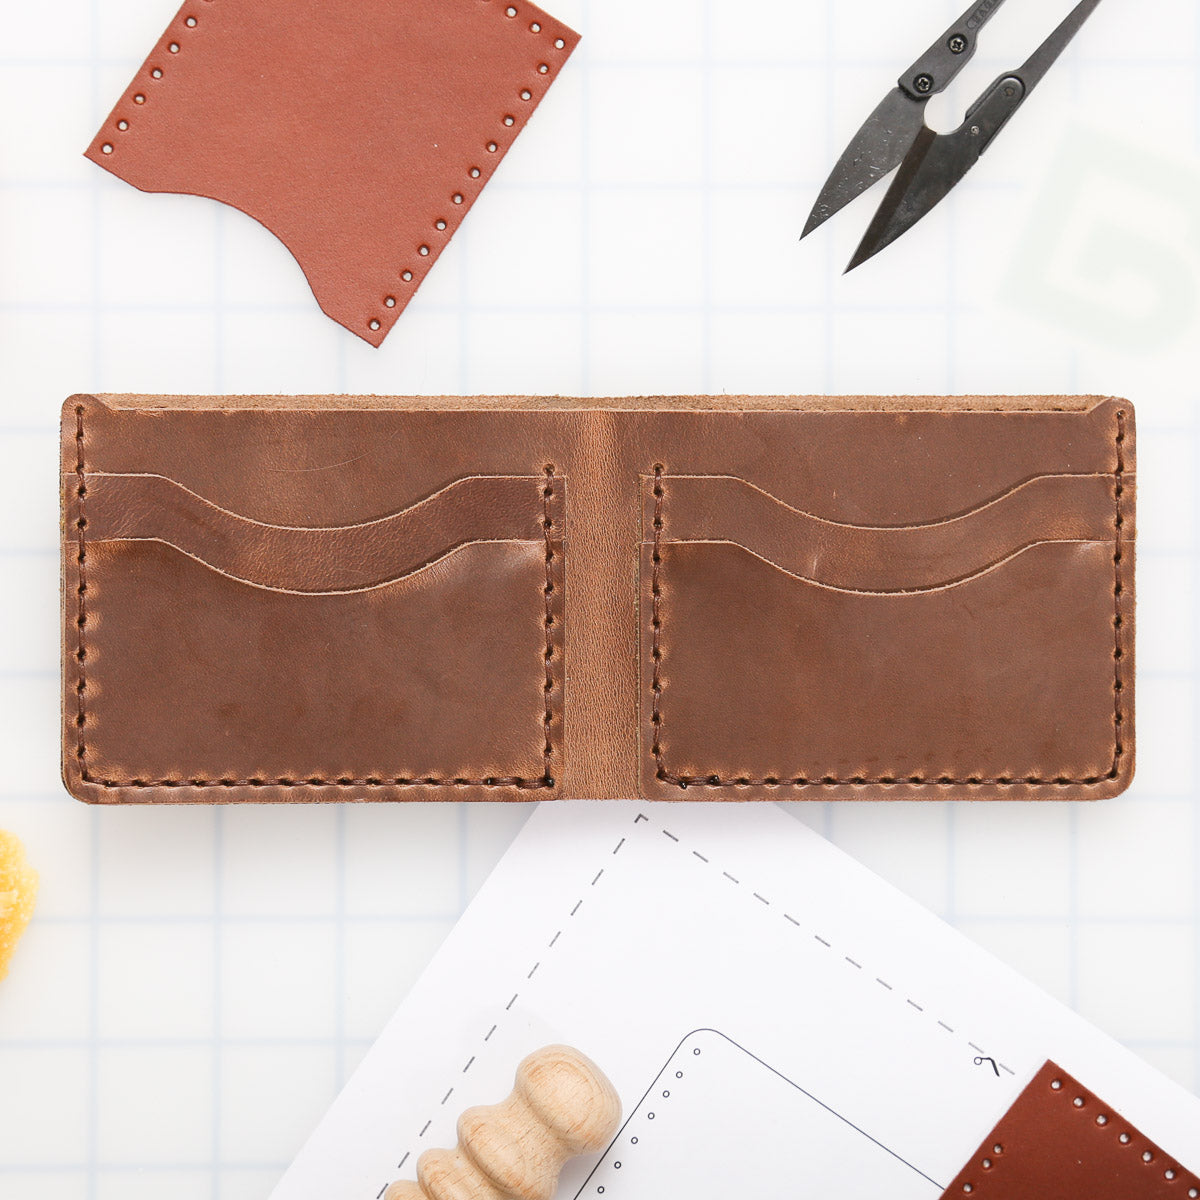 DIY 5-Pocket Bifold Wallet Leather Kit